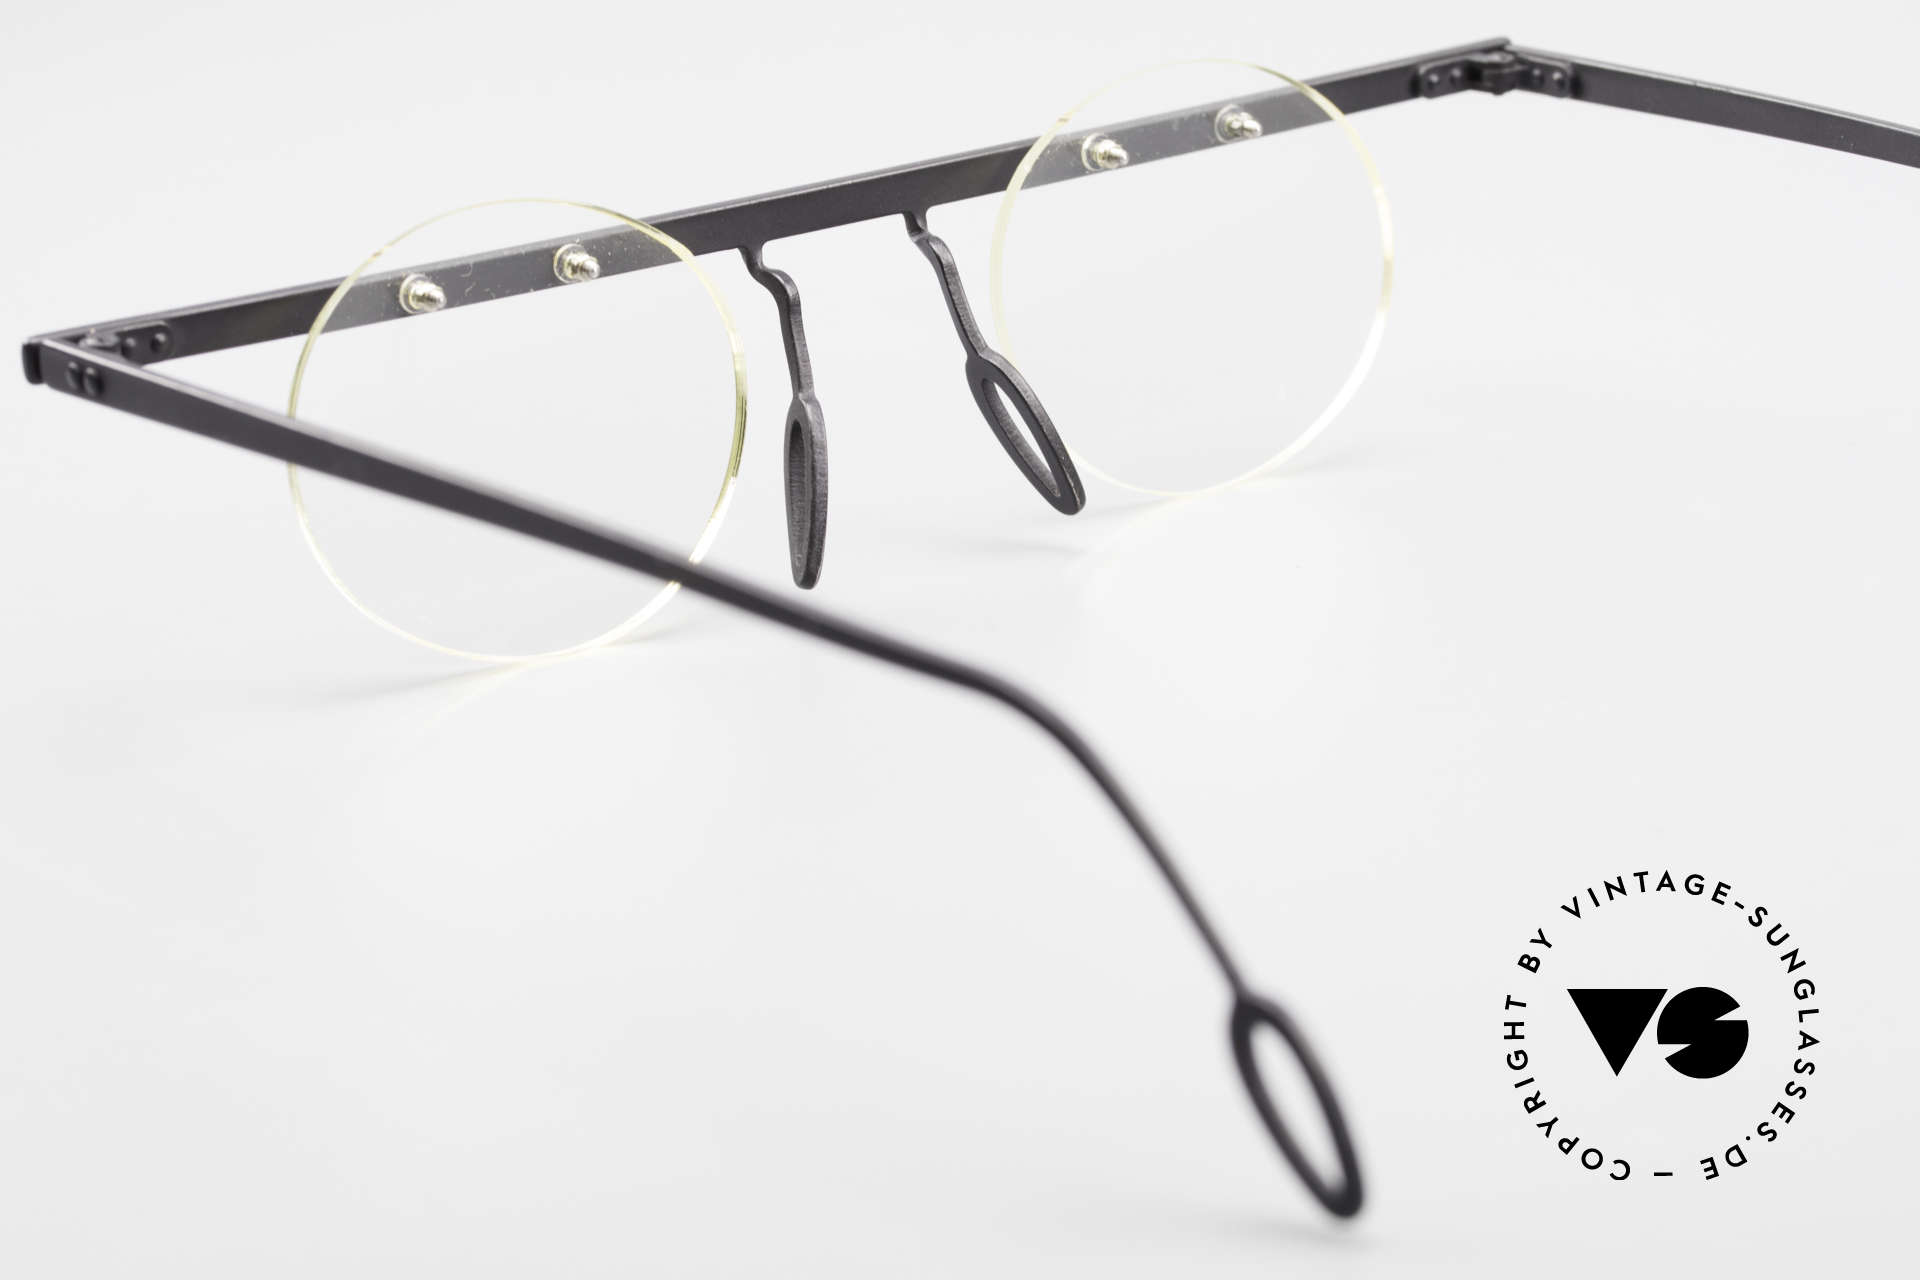 Theo Belgium Tita VII 11 Vintage Titanium Eyeglasses, Size: large, Made for Men and Women